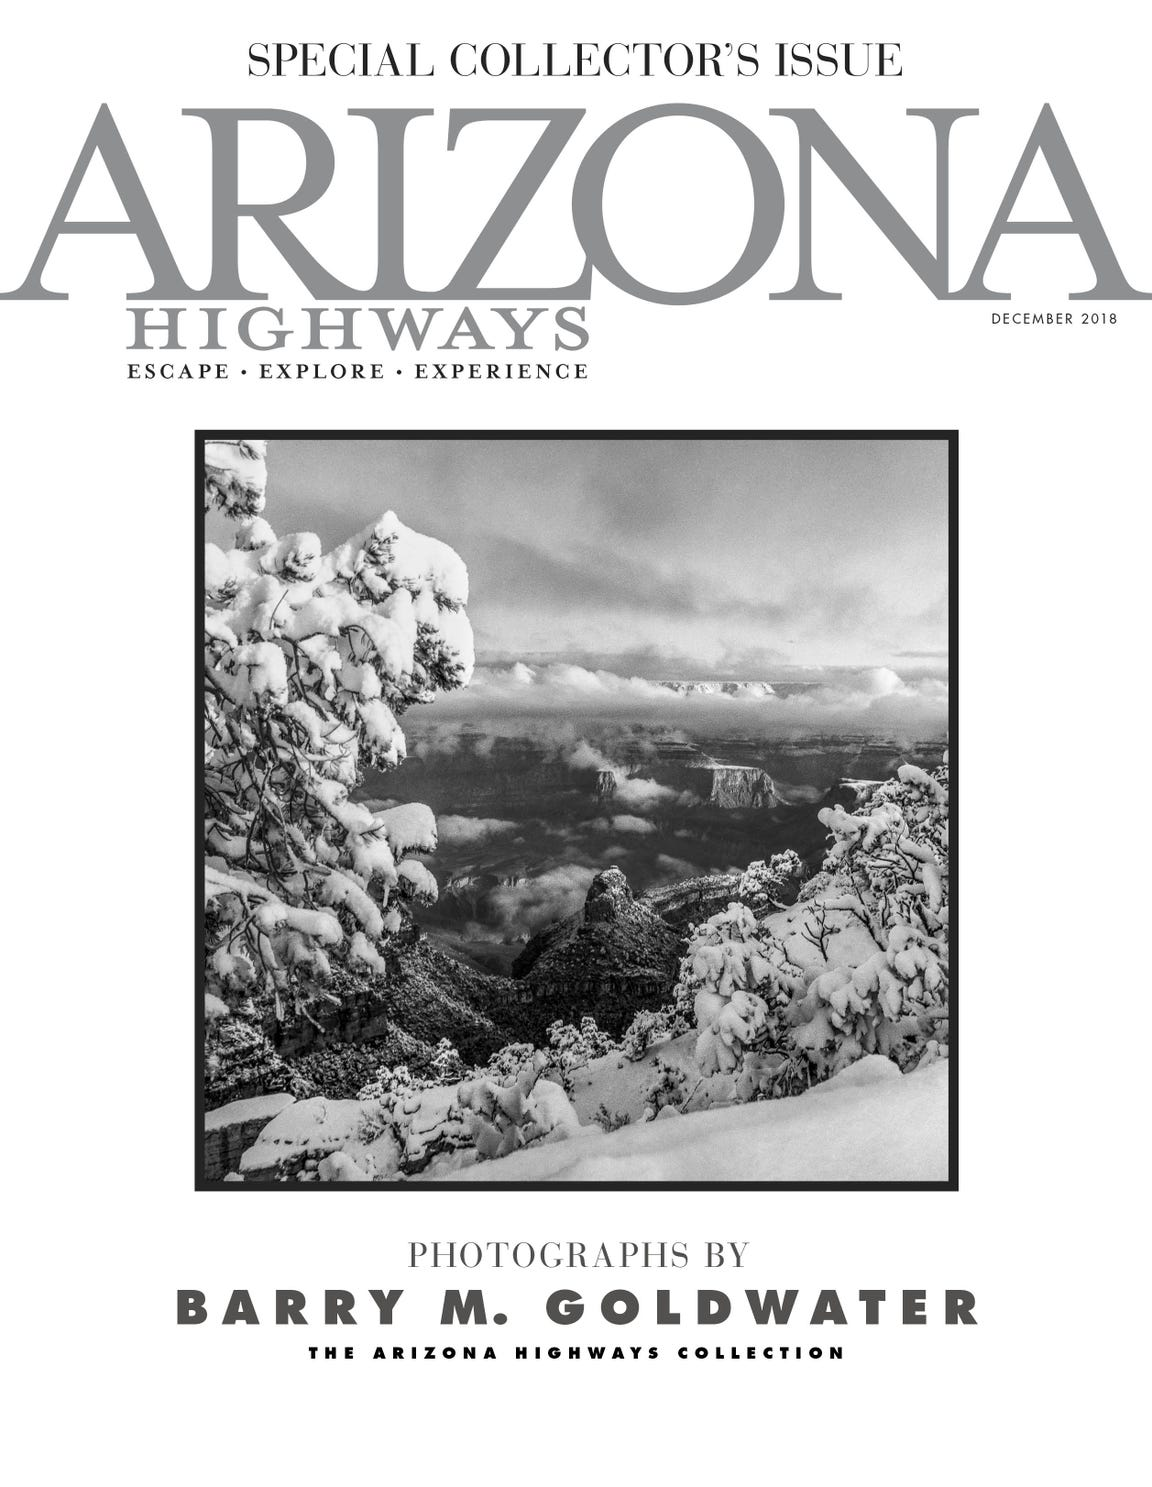 The Barry Goldwater photography issue by Arizona Highways.